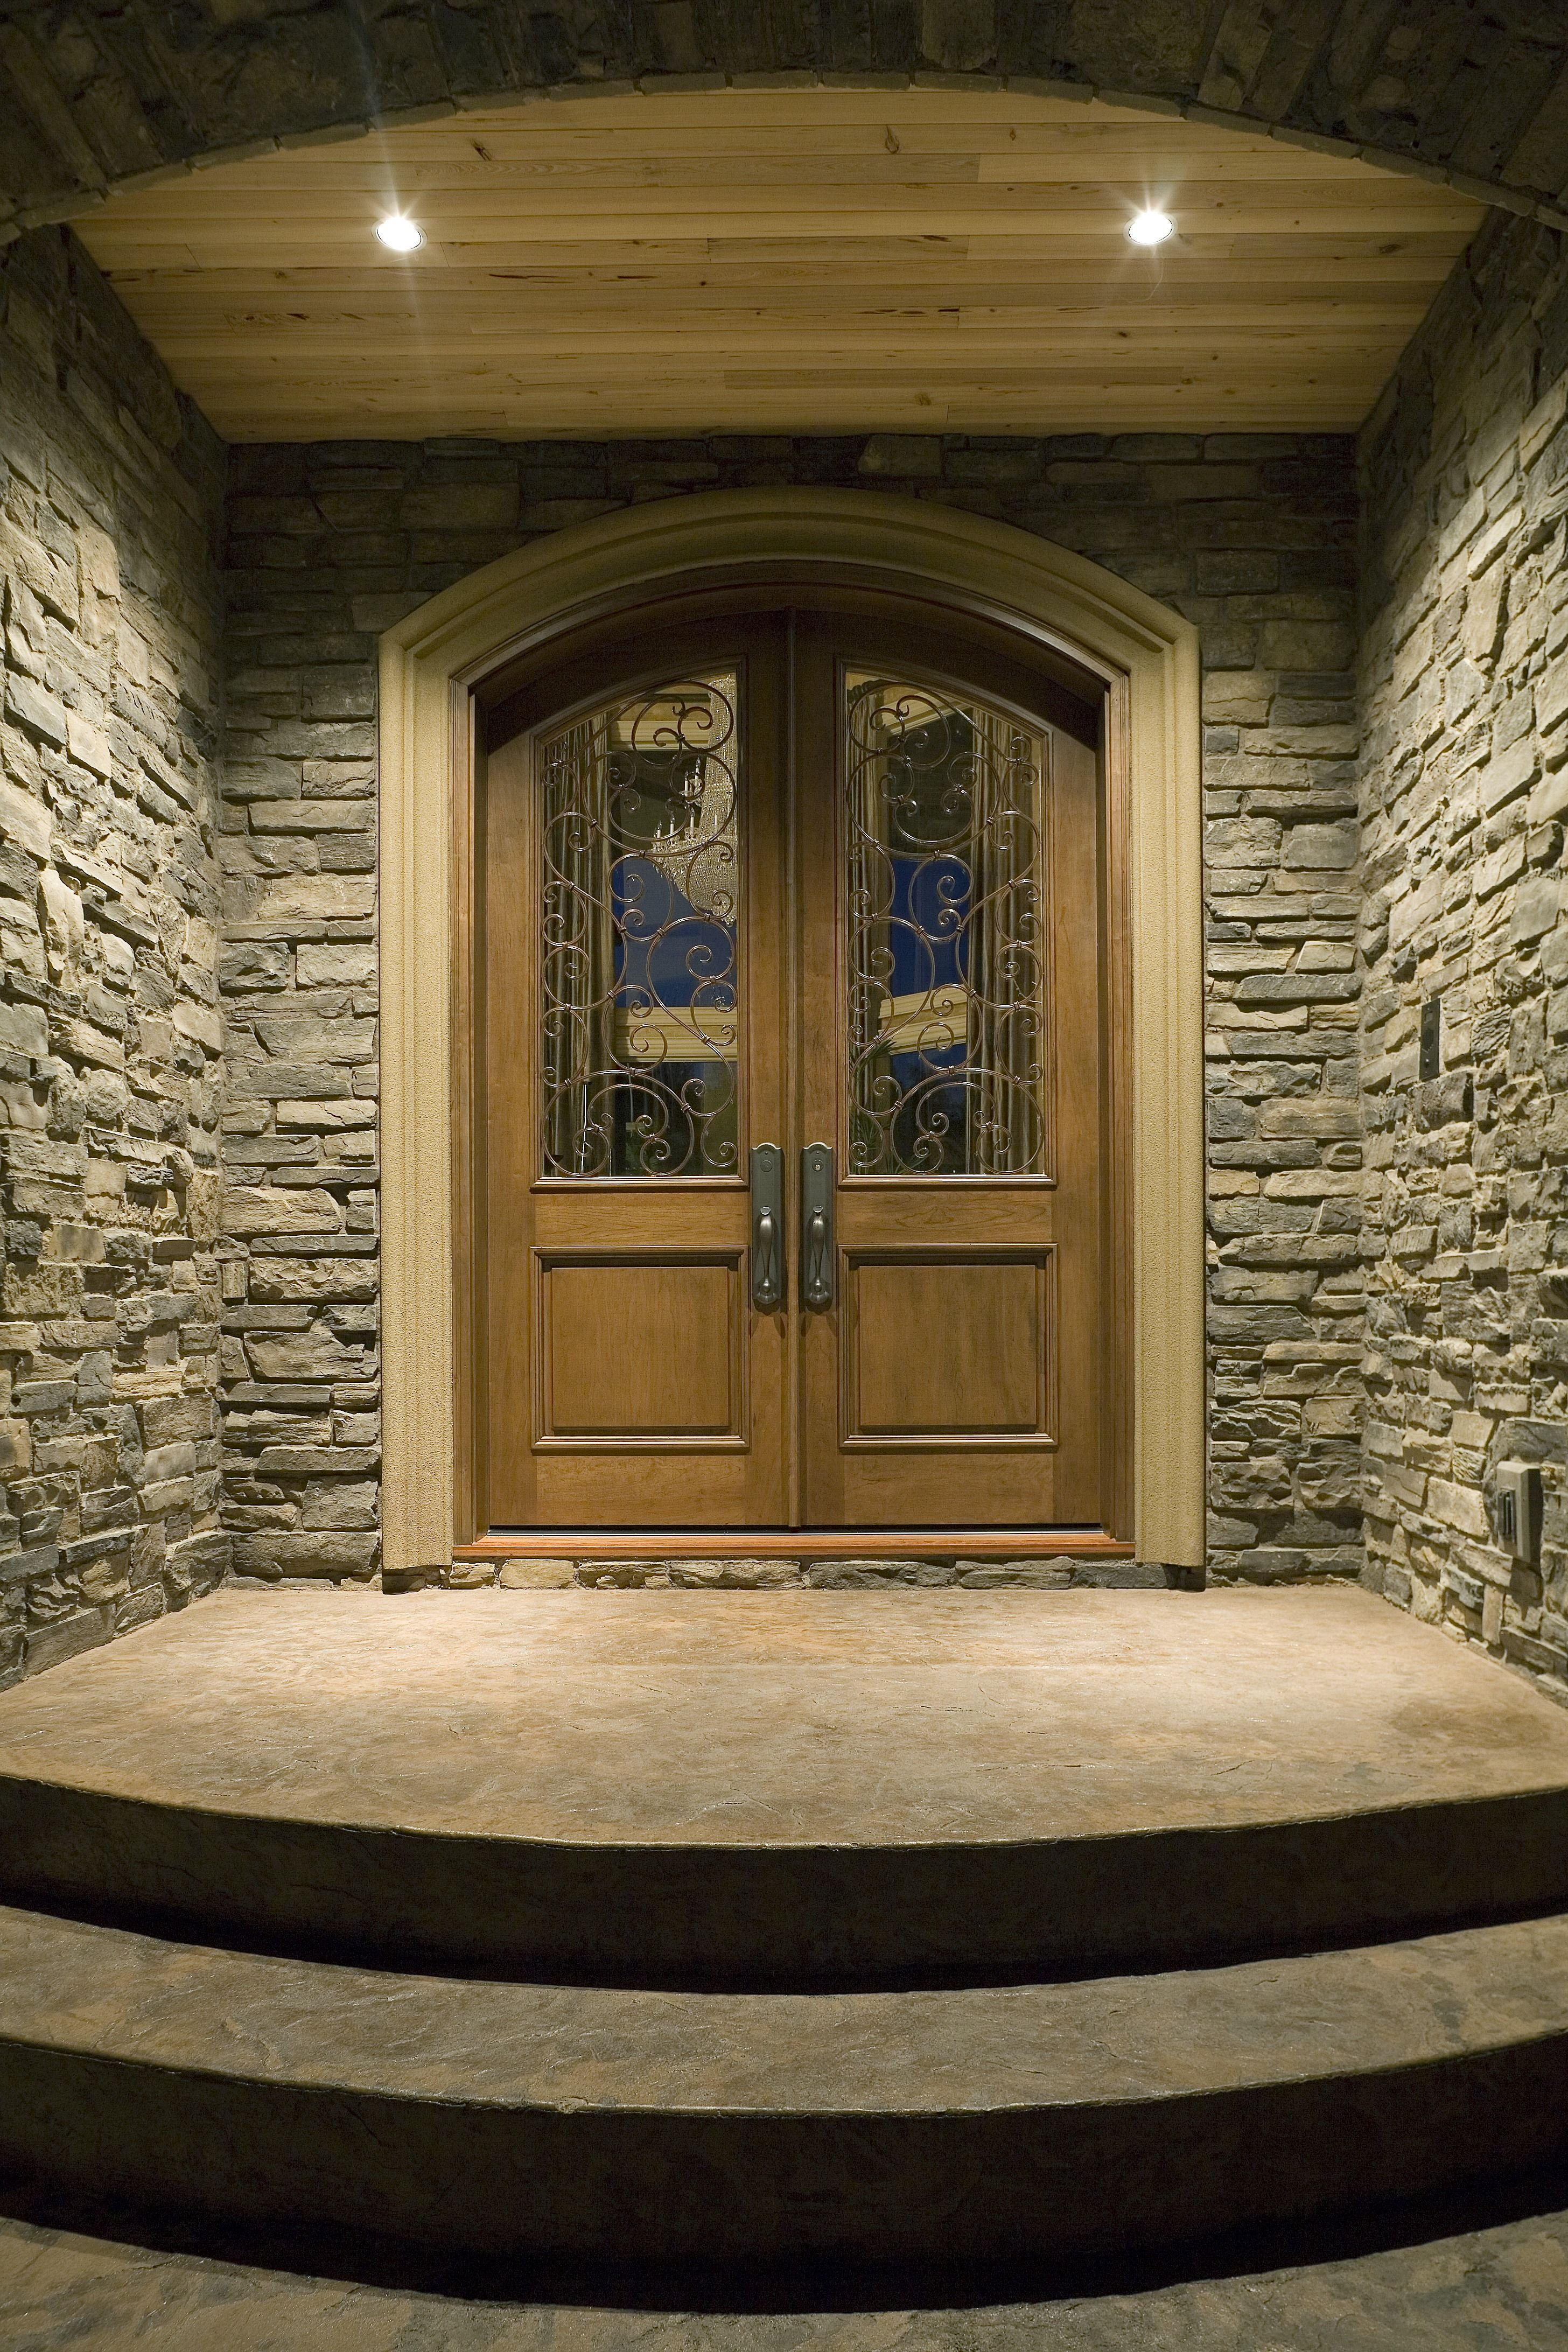 Quite The Entry With Stone Siding Double Doors Concrete Frame Hardwood Ceiling And Recessed Lights To Give Any Suburban Home Evening View They